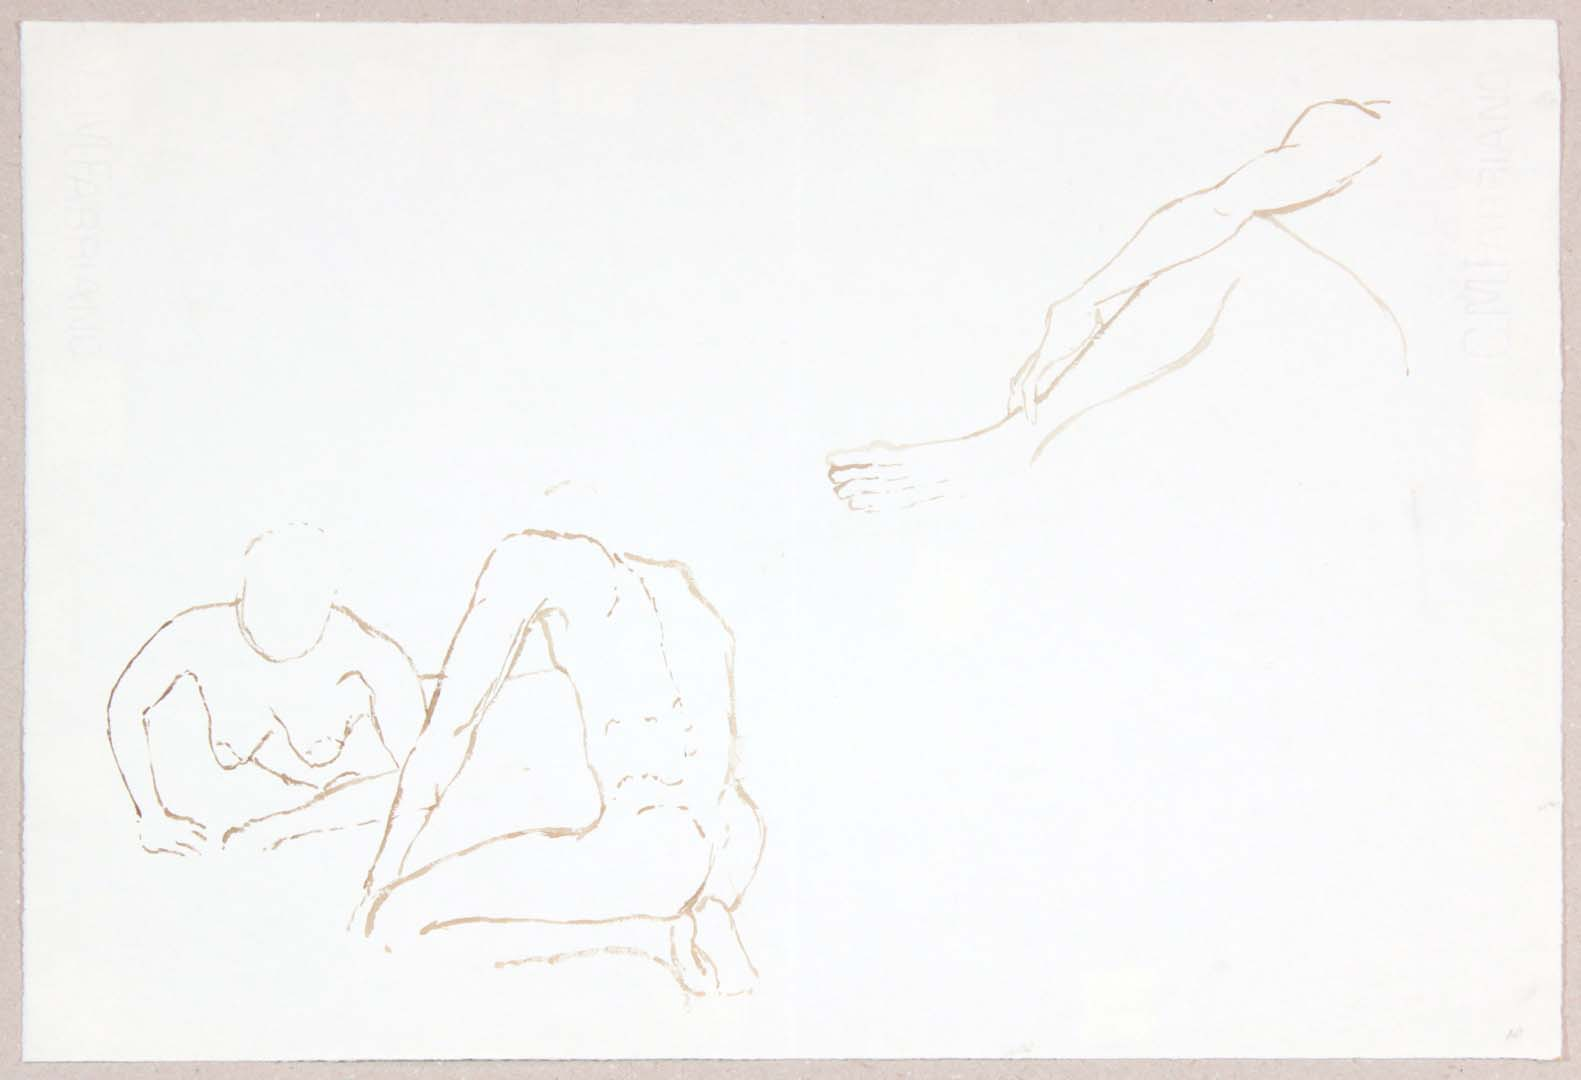 Two Models on Floor and Leg and Arm Ink 13 x 18.75